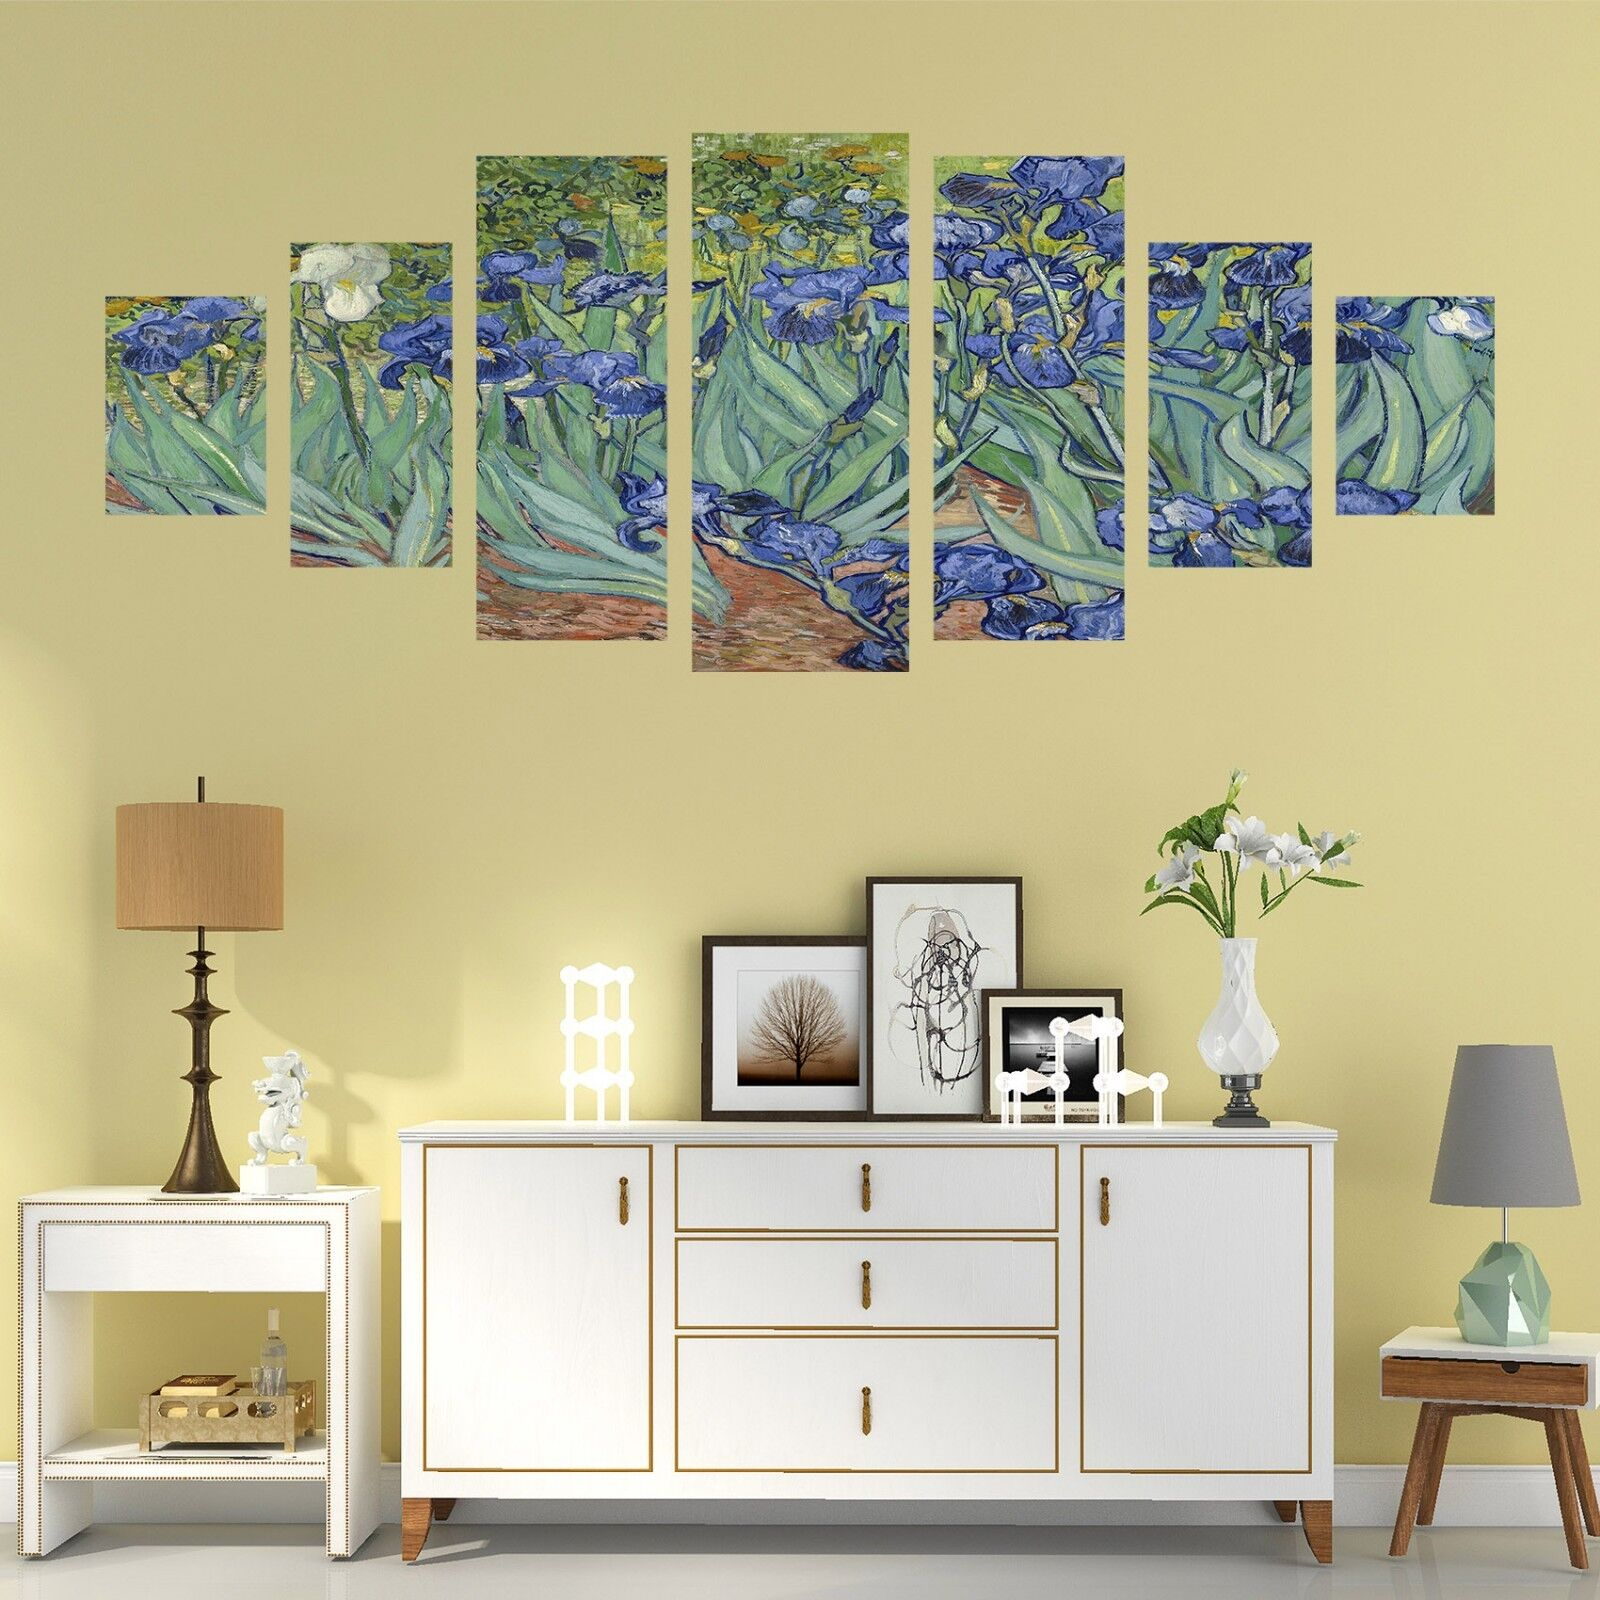 3D Painted Flowers 578 Unframed Print Wall Paper Decal Wall Deco Indoor AJ Wall